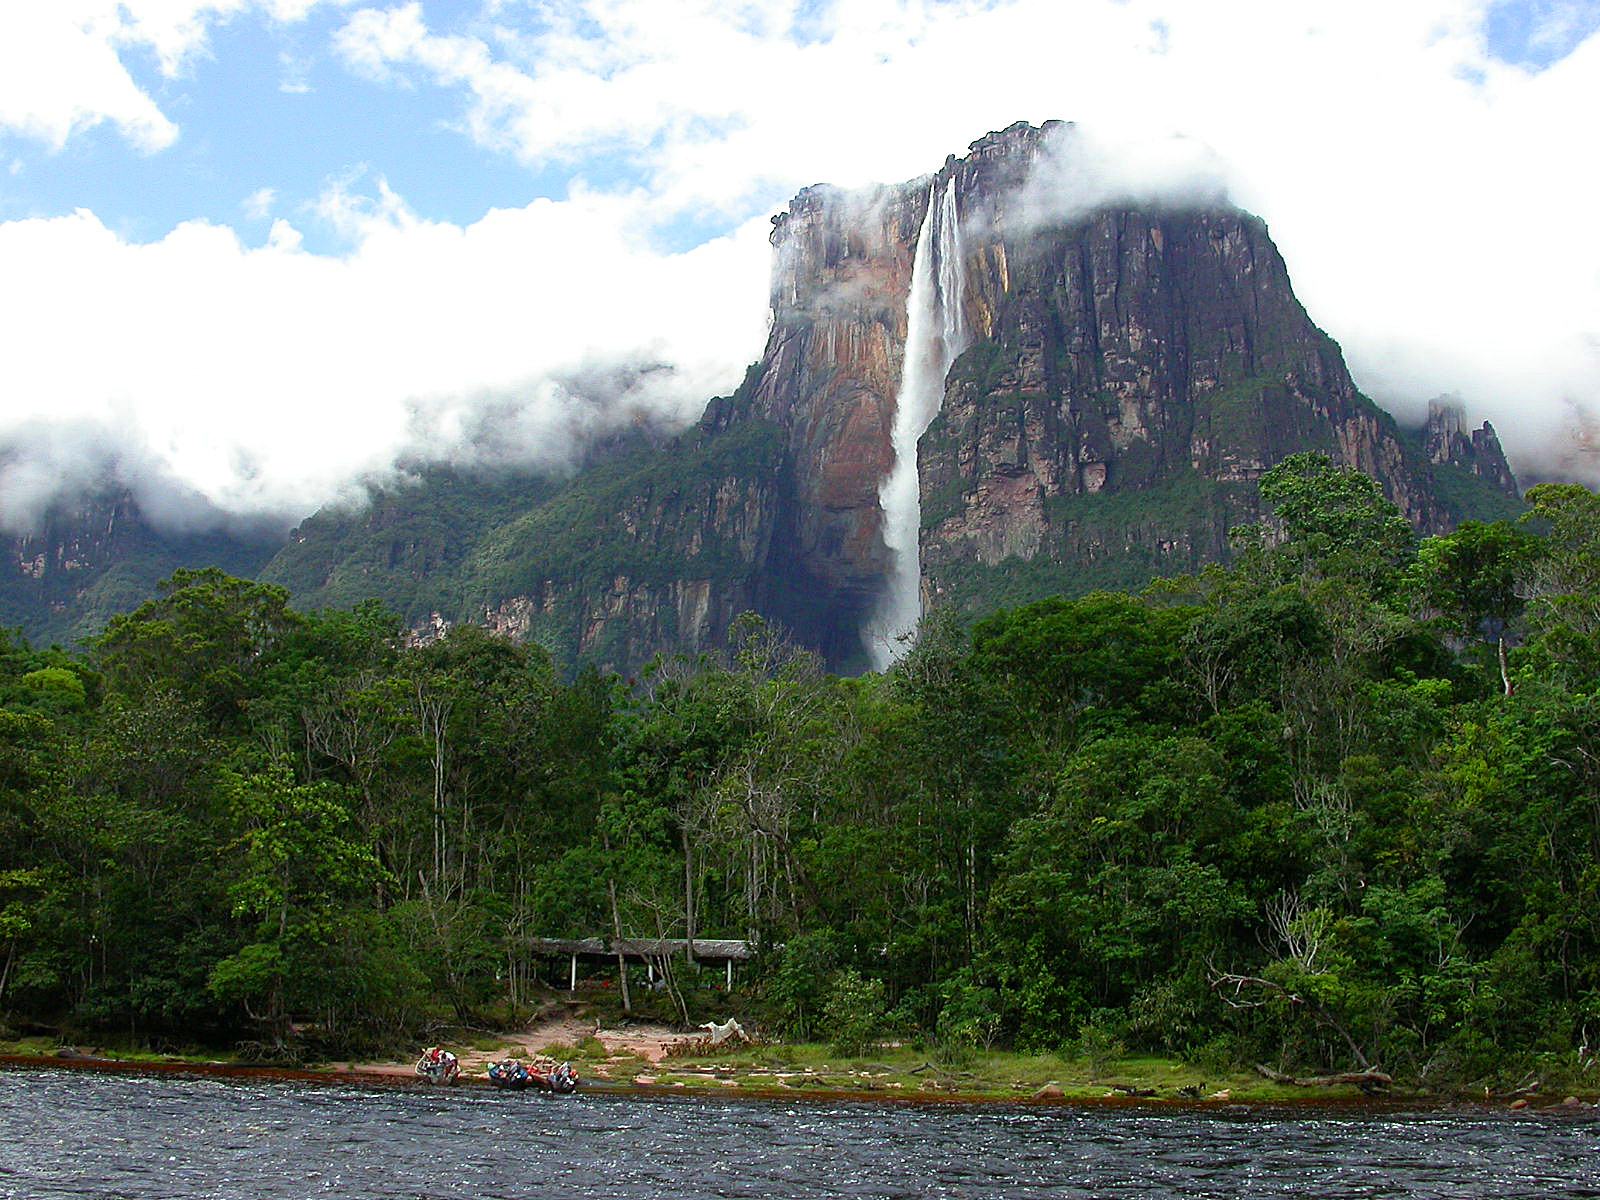 Angel falls or salto angel is a waterfall that falls freely without